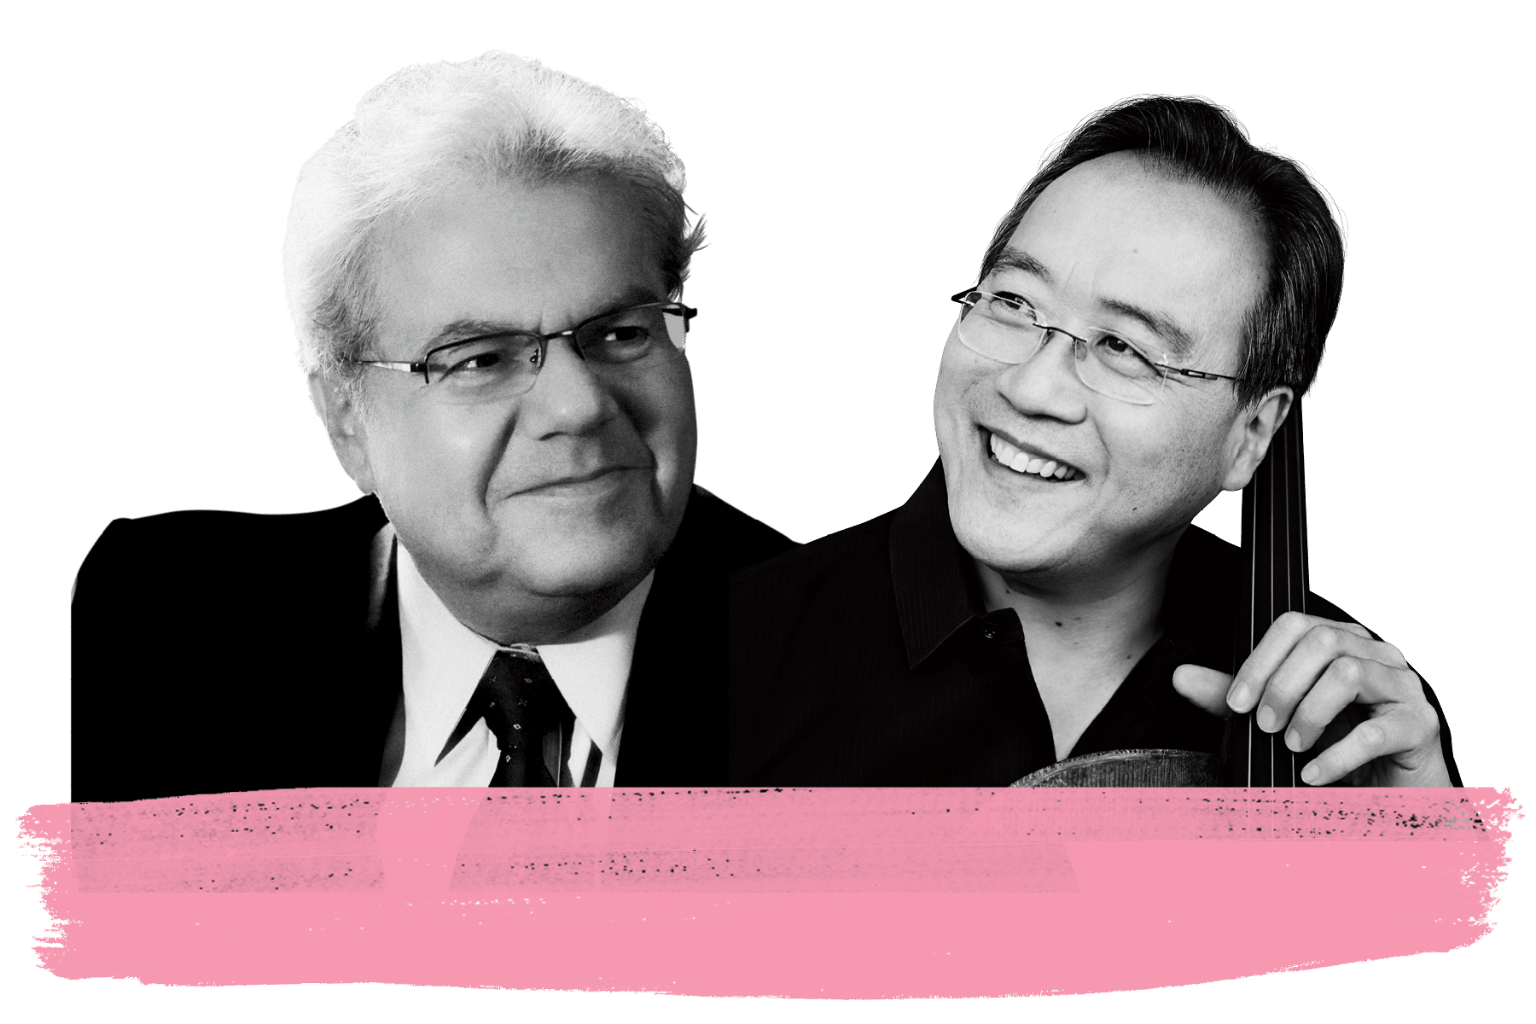 Emanuel Ax and Yo-Yo Ma